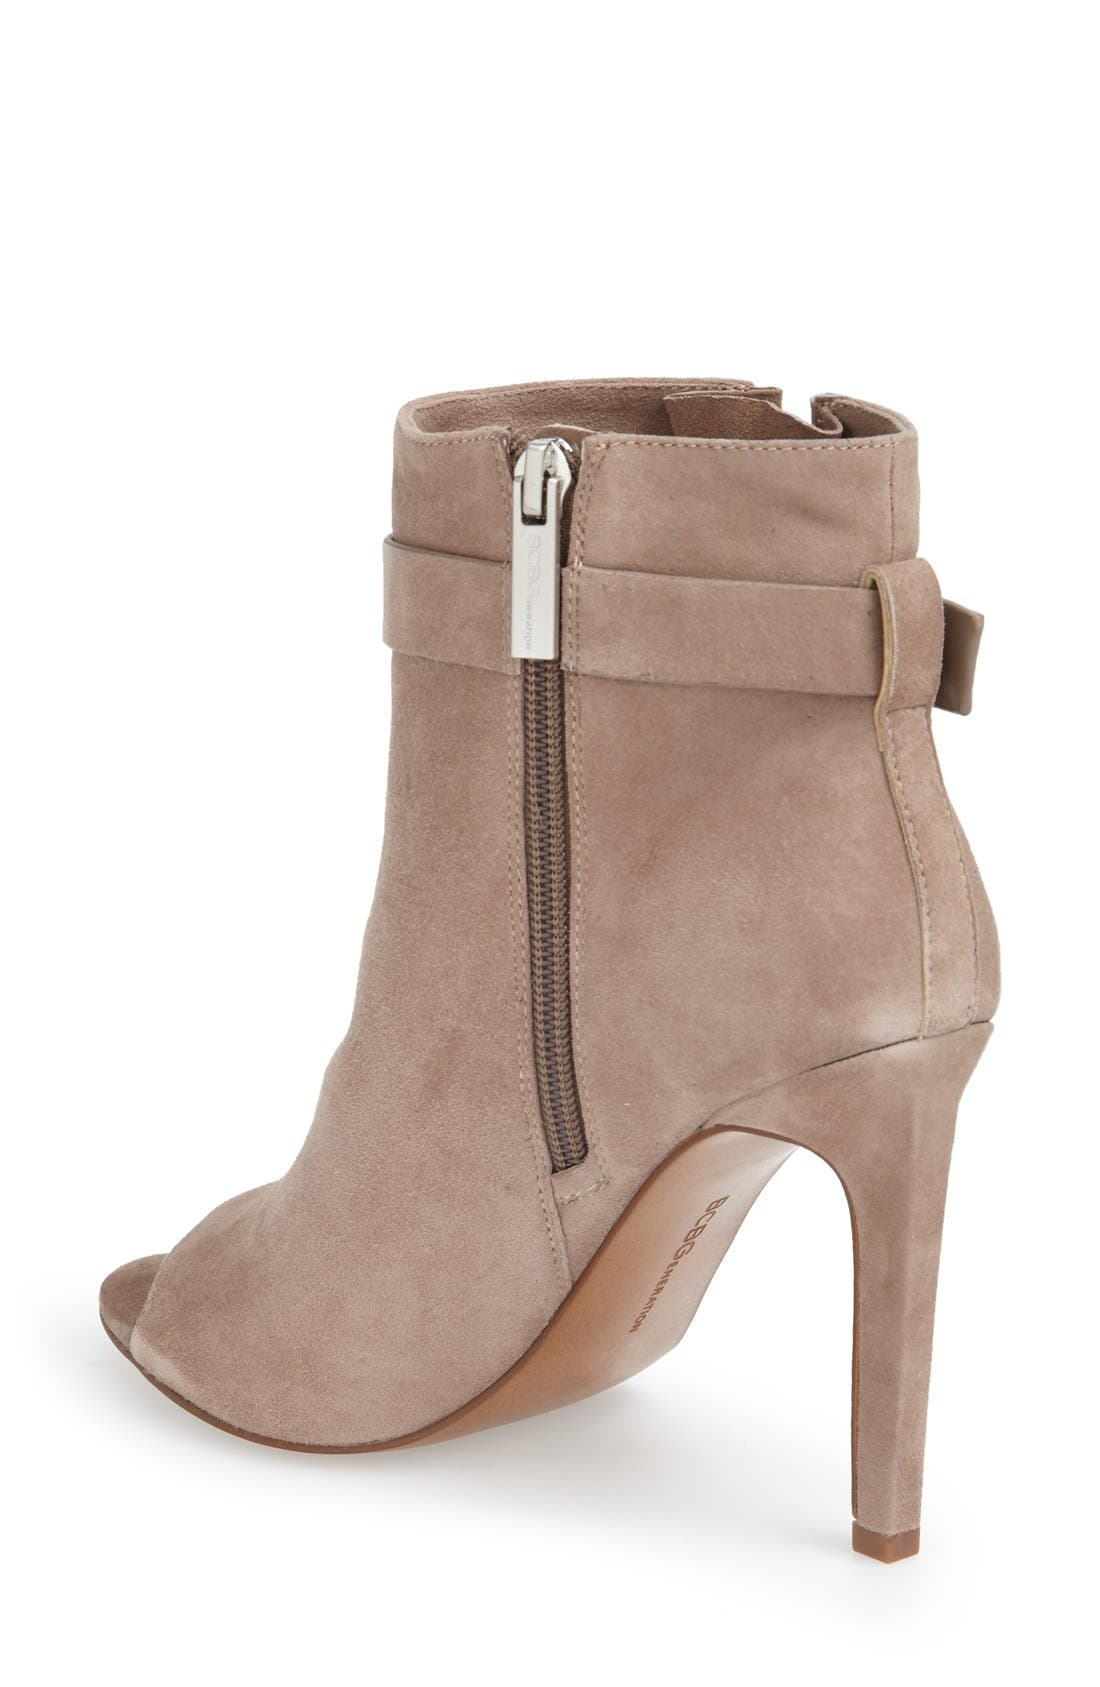 Alternate Image 2  - BCBGeneration 'Carolena' Peep Toe Bootie (Women)